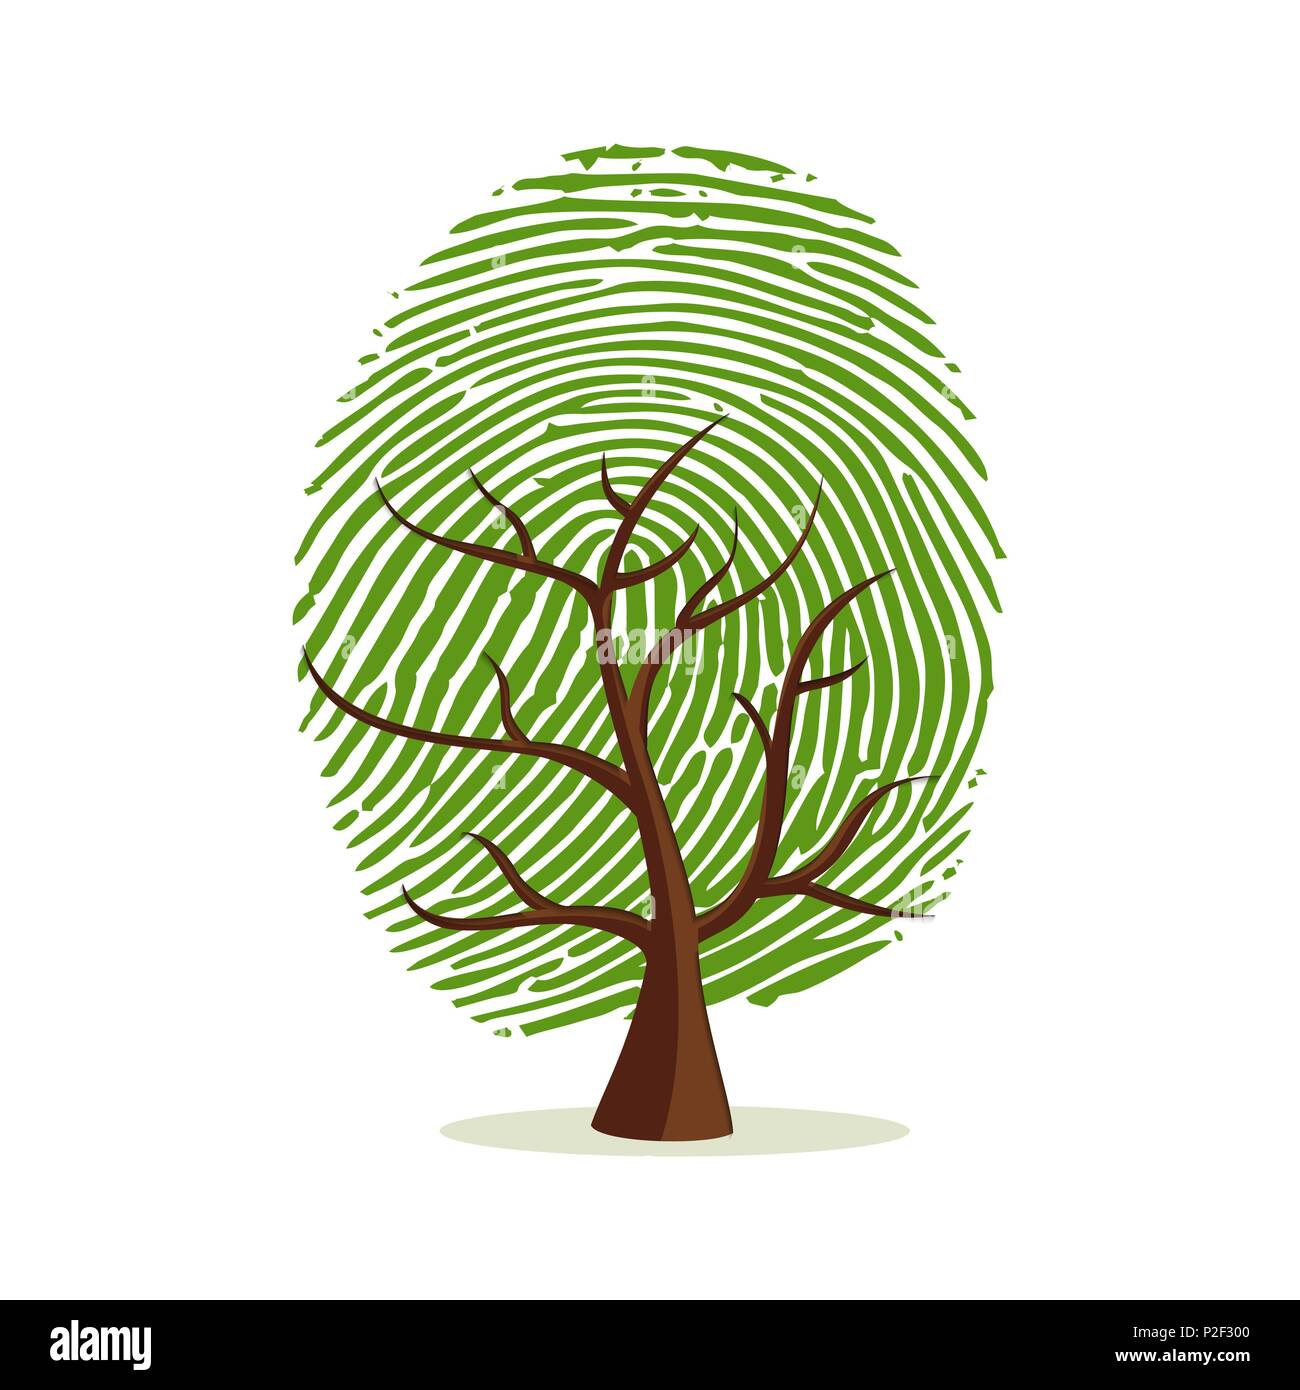 Fingerprint tree. Green human finger print concept for psychology project, identity or personality designs. EPS10 vector. - Stock Vector